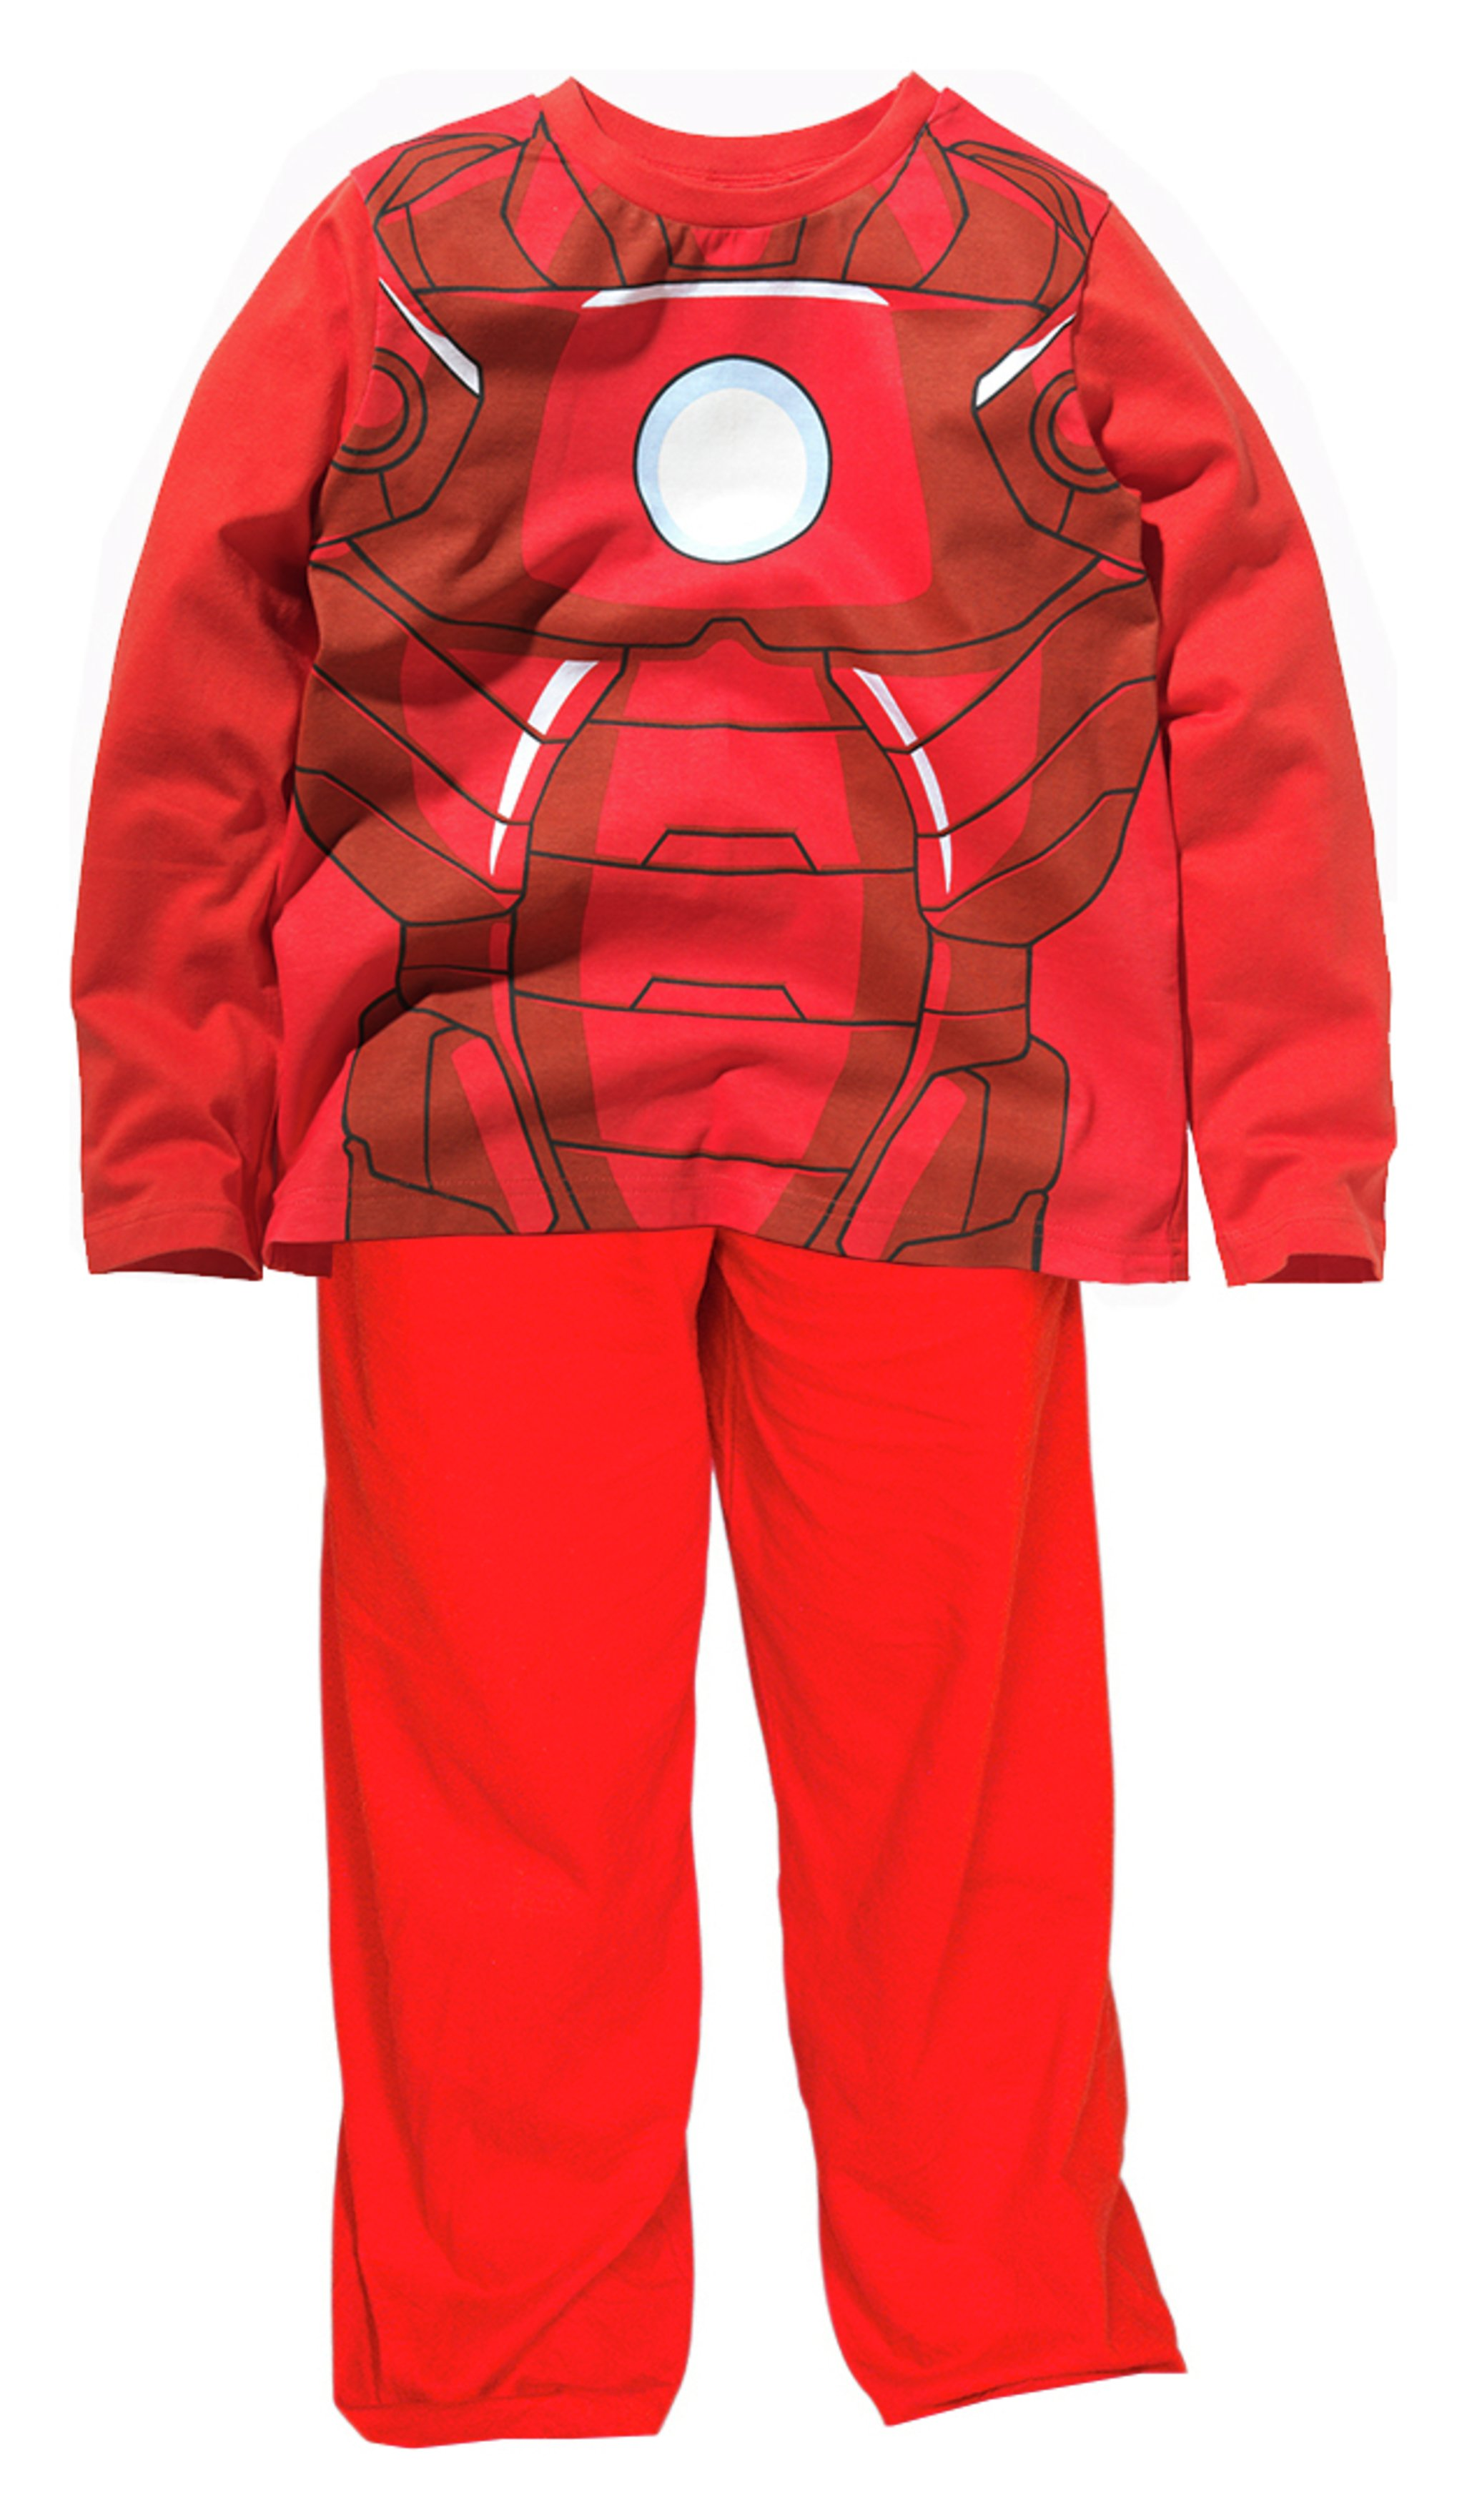 Image of Iron Man Novelty Pyjamas - 2-3 Years